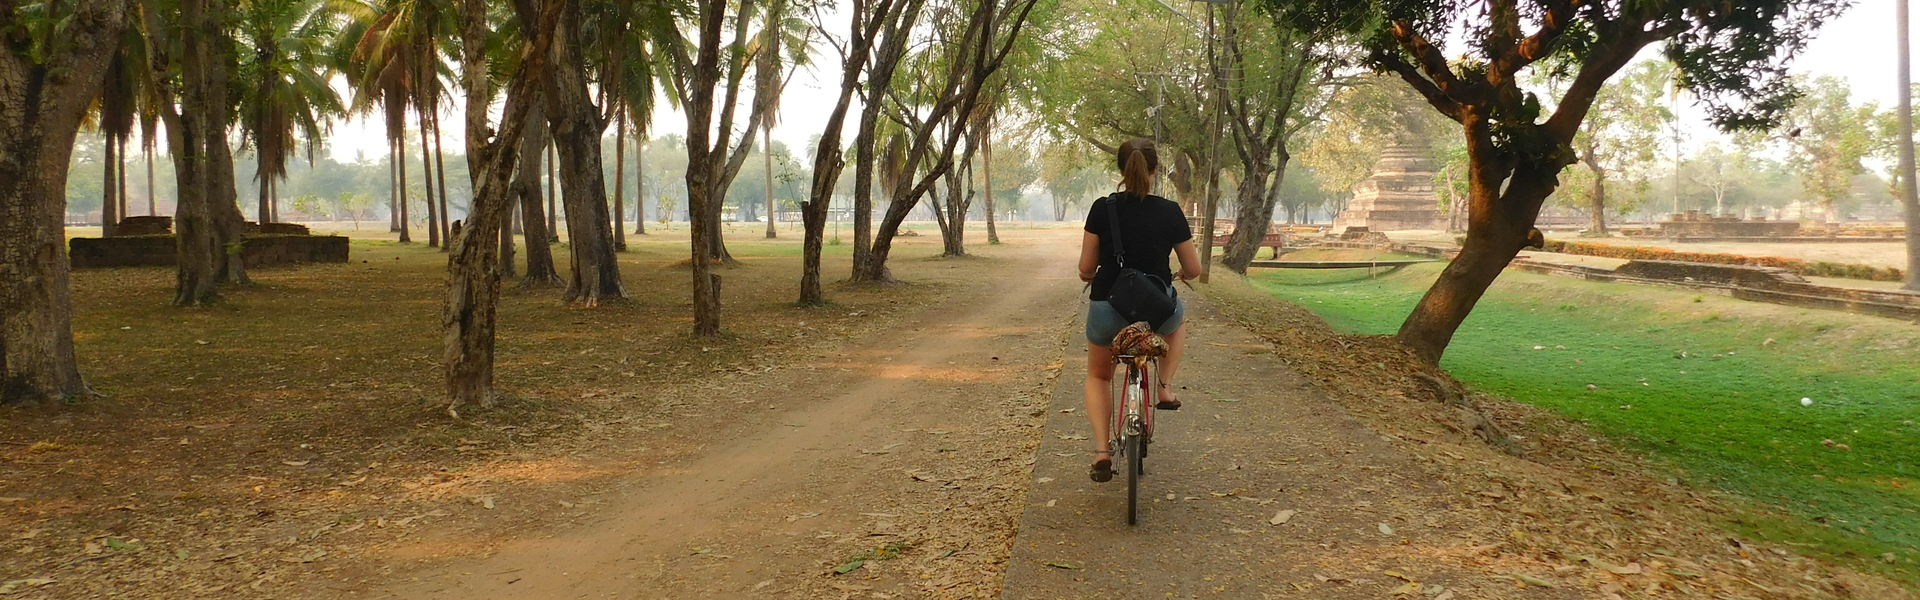 Young woman riding a bike in Chiang Mai, Thailand